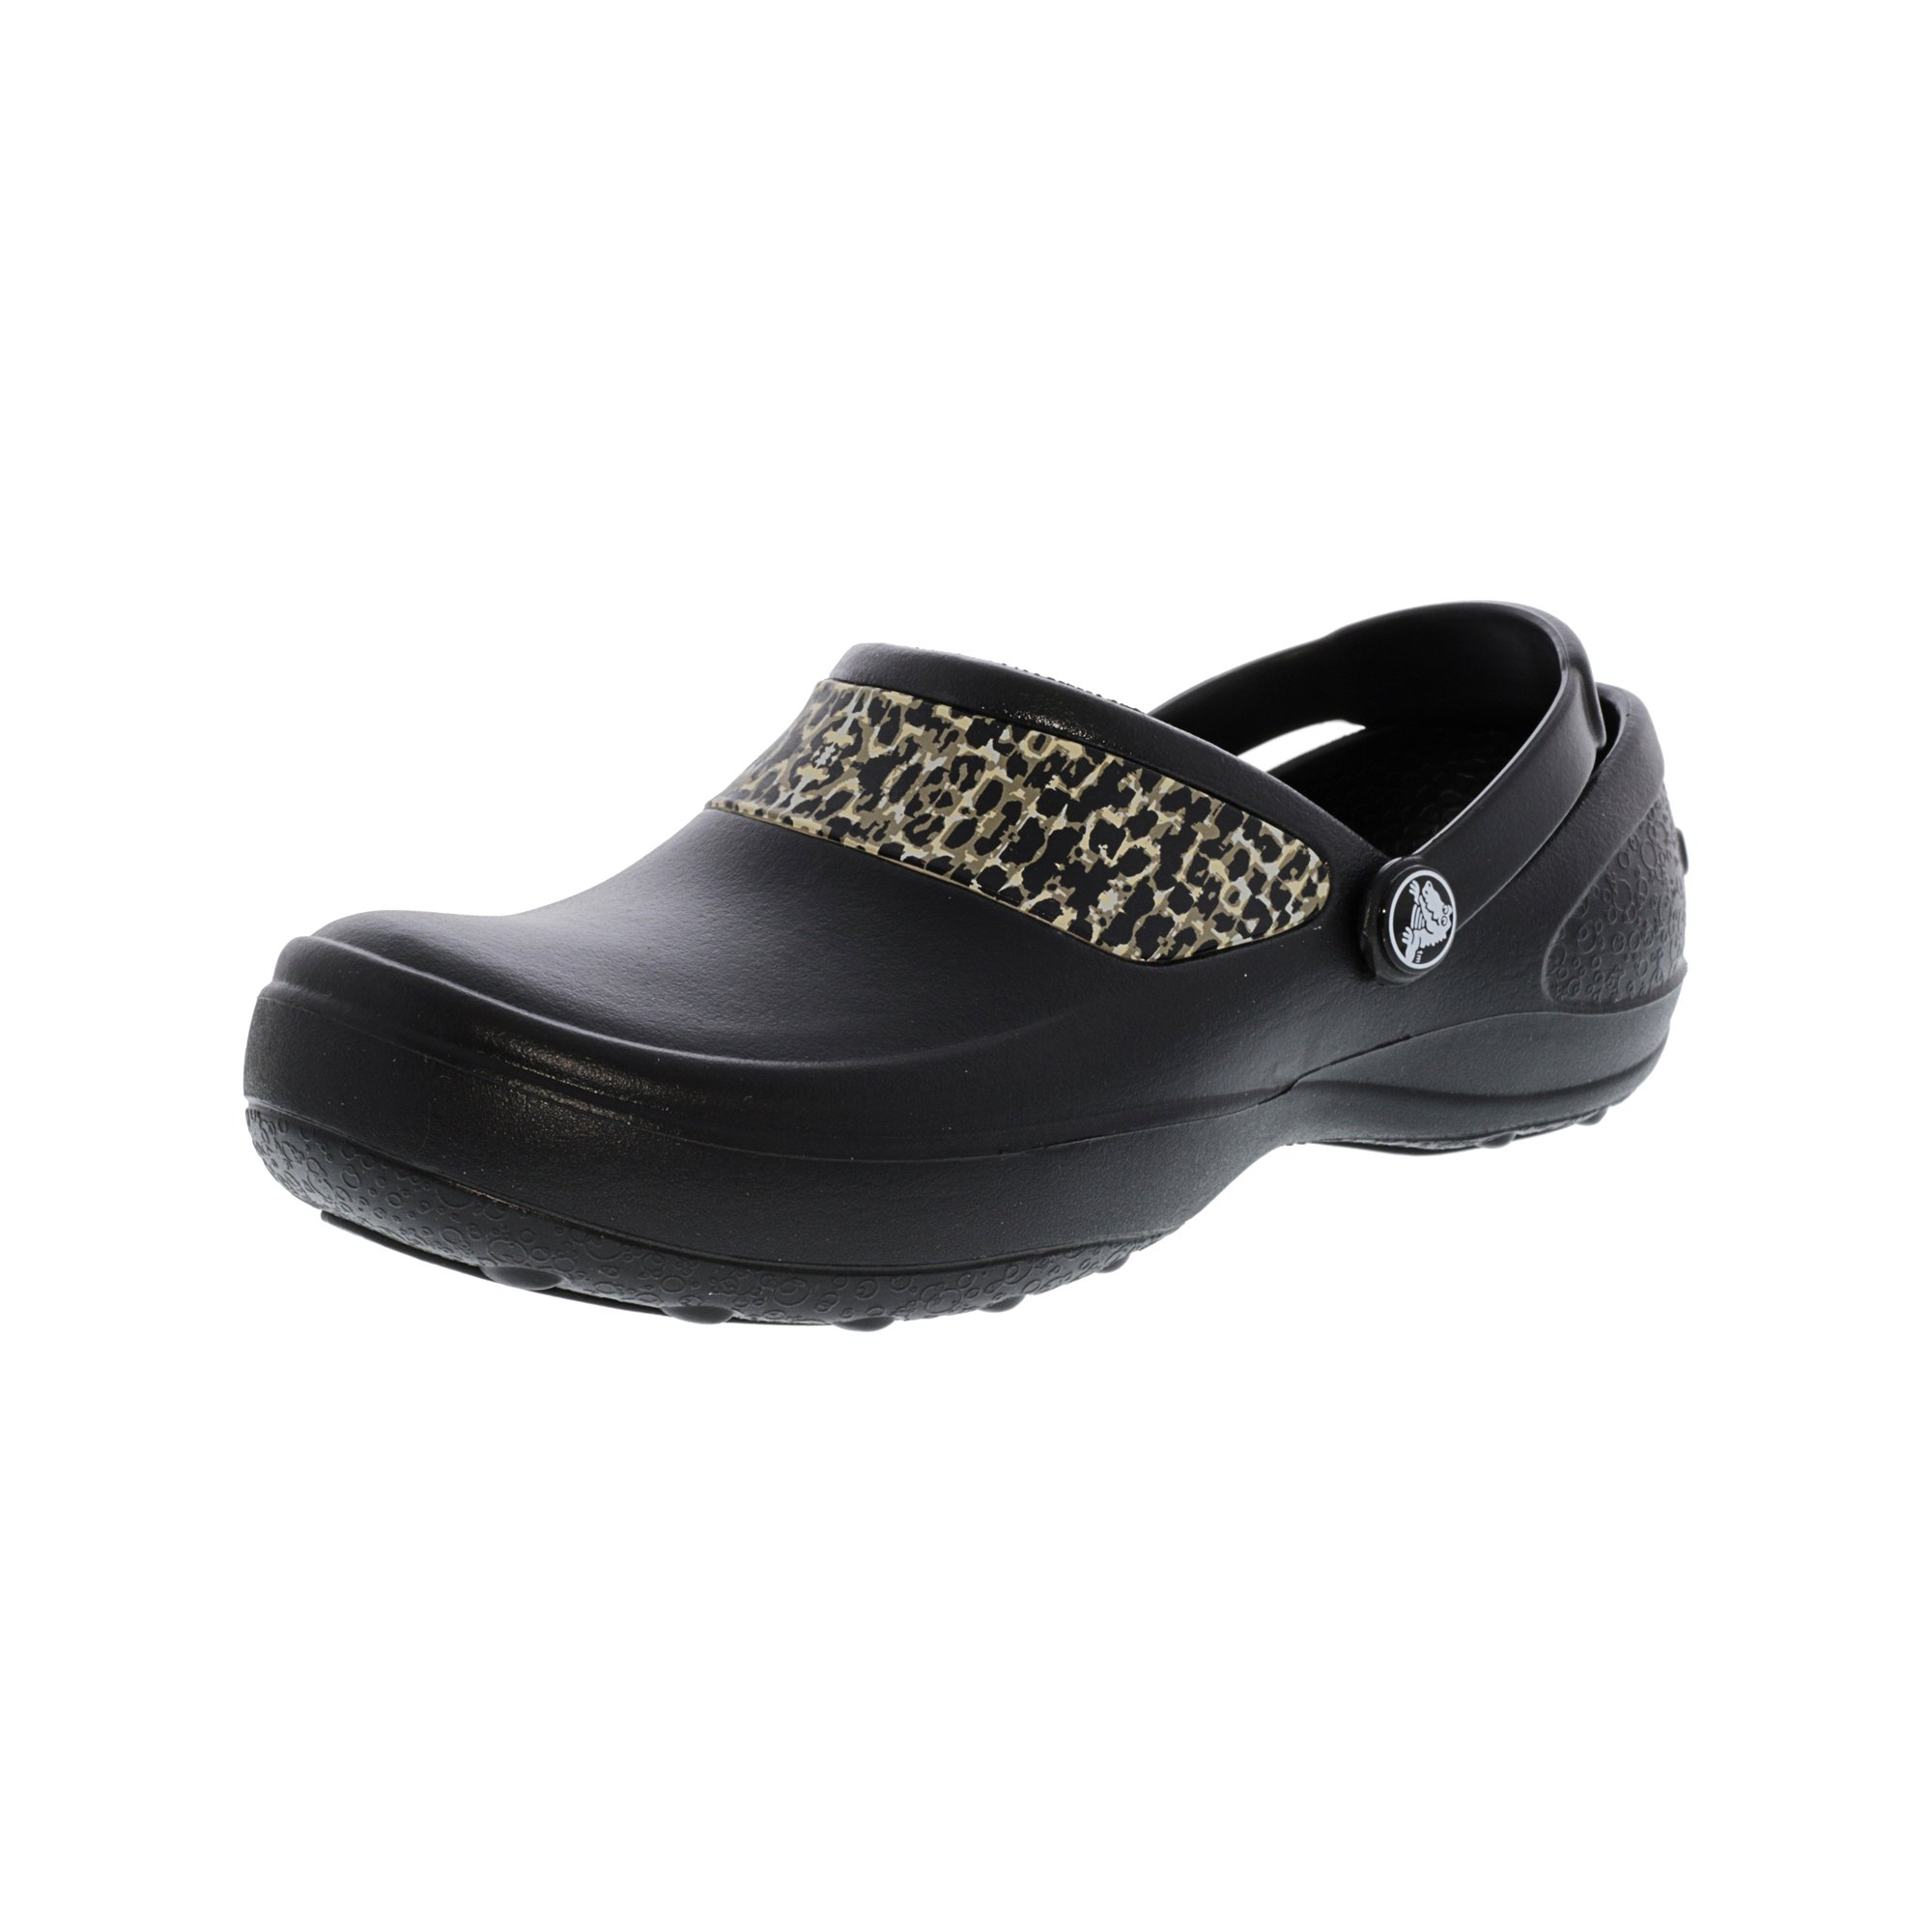 9772a6ddcd9b57 Buy Crocs Women s Mercy Work Black - Gold Ankle-High Flat Shoe - 11M ...